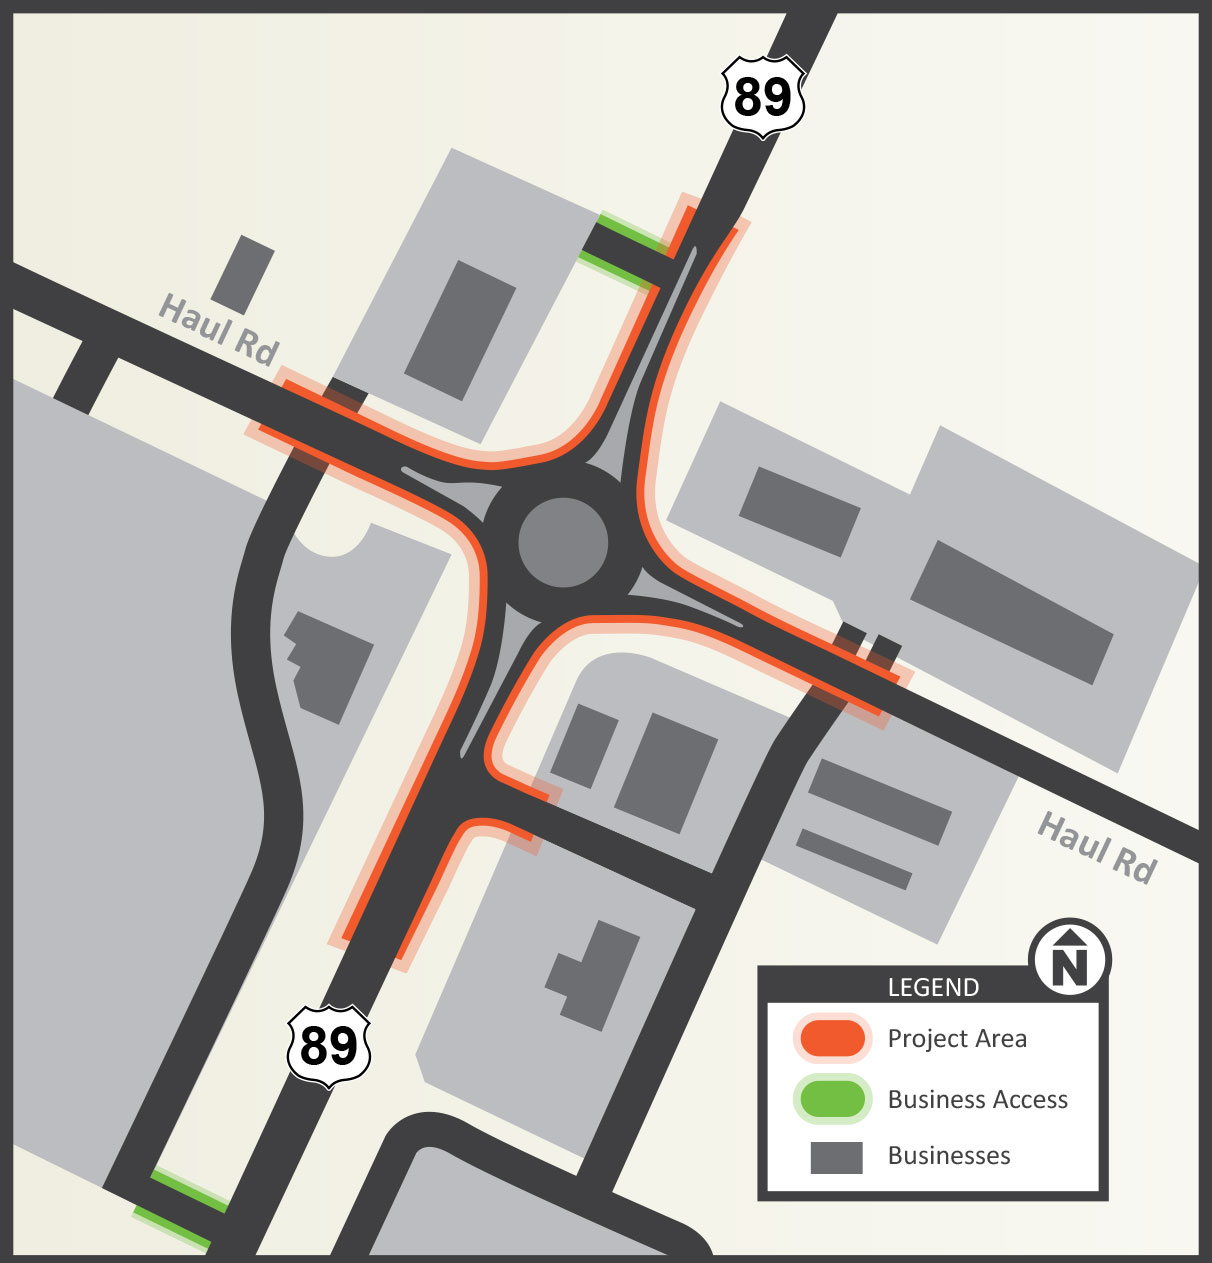 Project area map with new roundabout